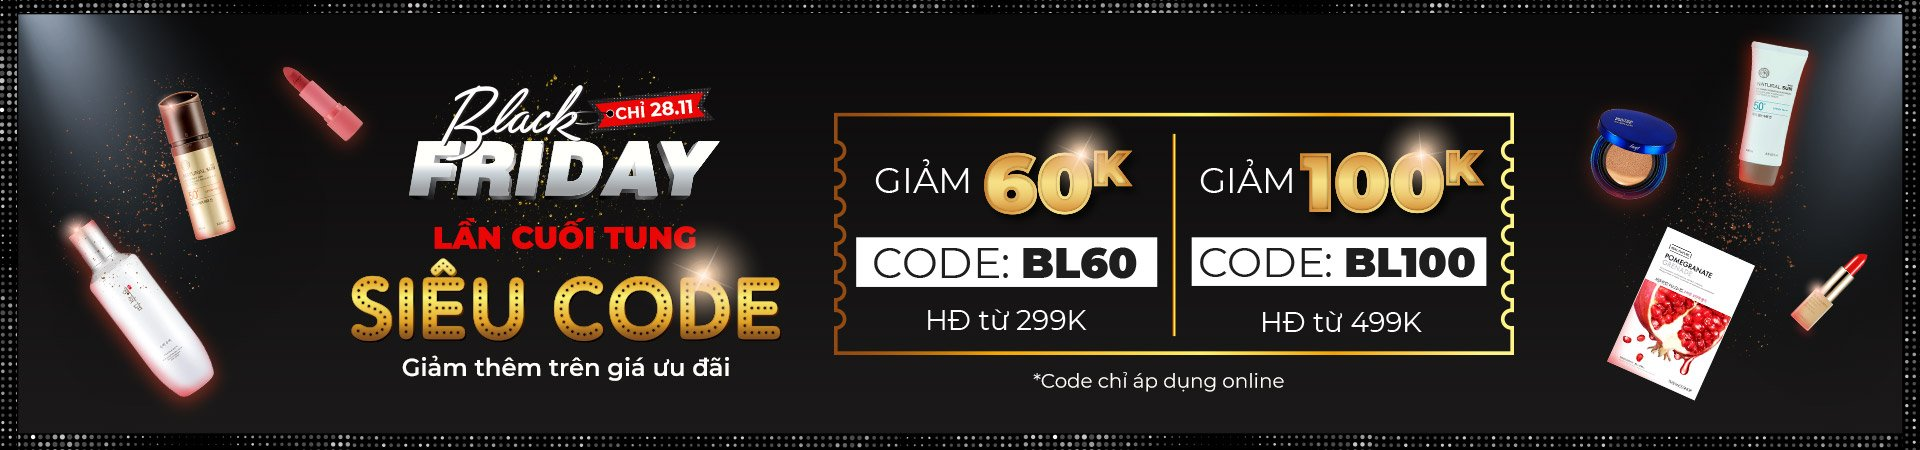 BLACK FRIDAY - SPECIAL COMBO ĐẶC QUYỀN ONLINE 28 - 30.11